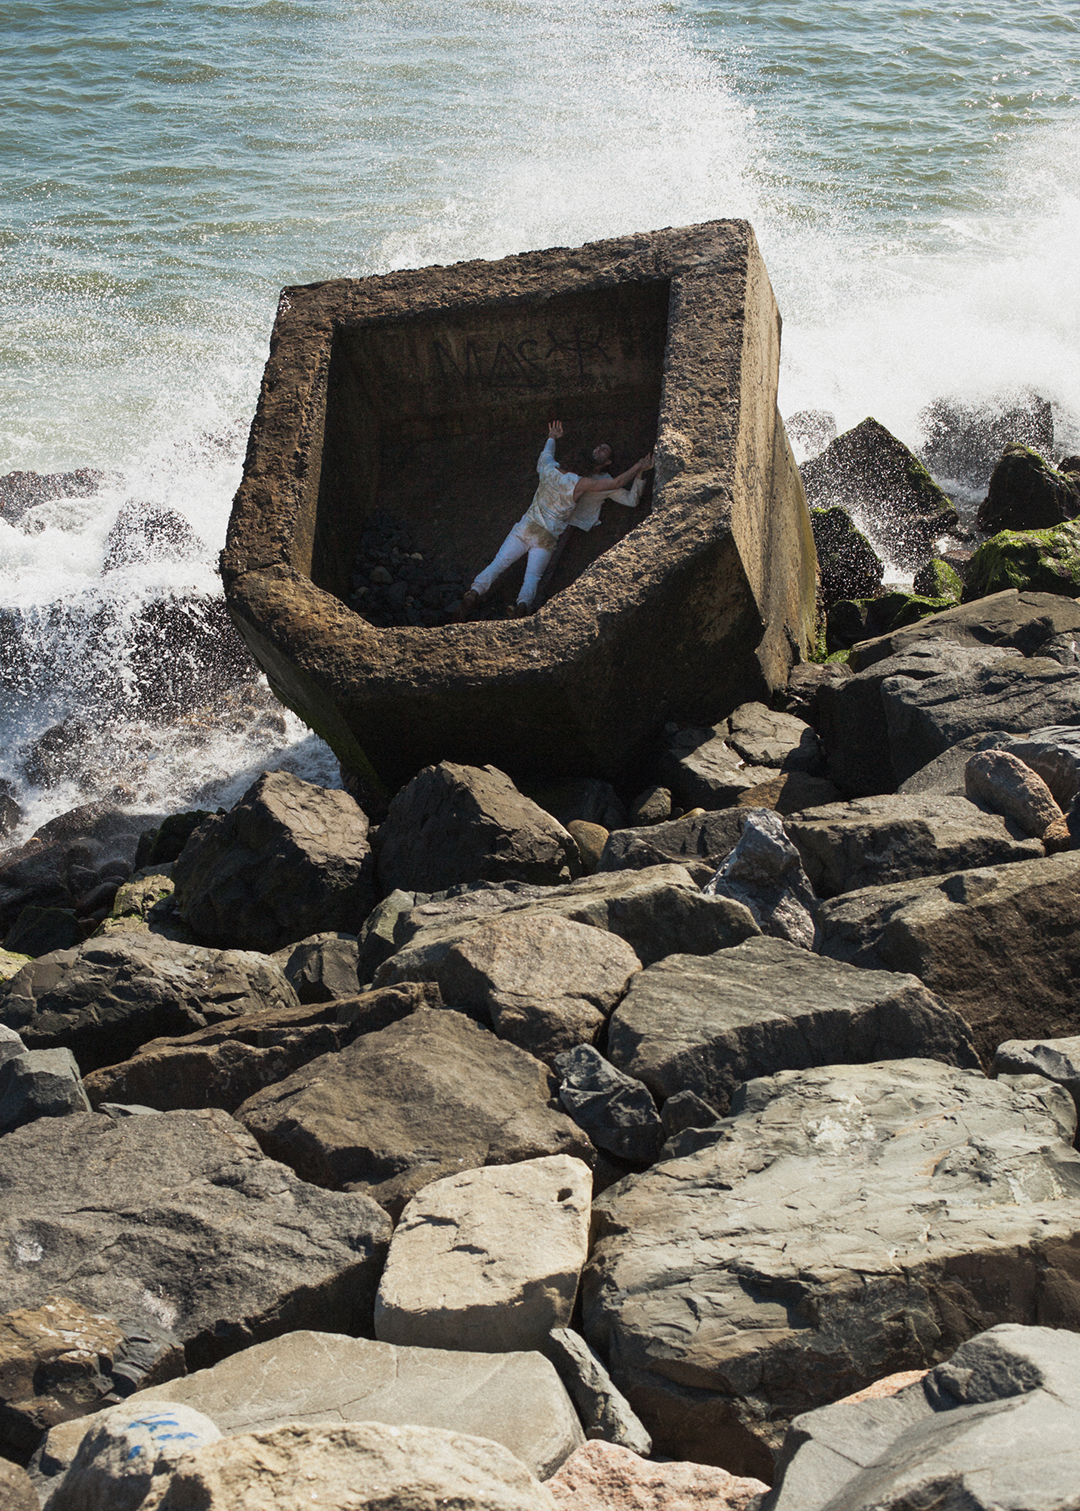 Documentation of research in and around a remnant of a bunker that is lodged in the ocean off the coast of Montauk, NY.